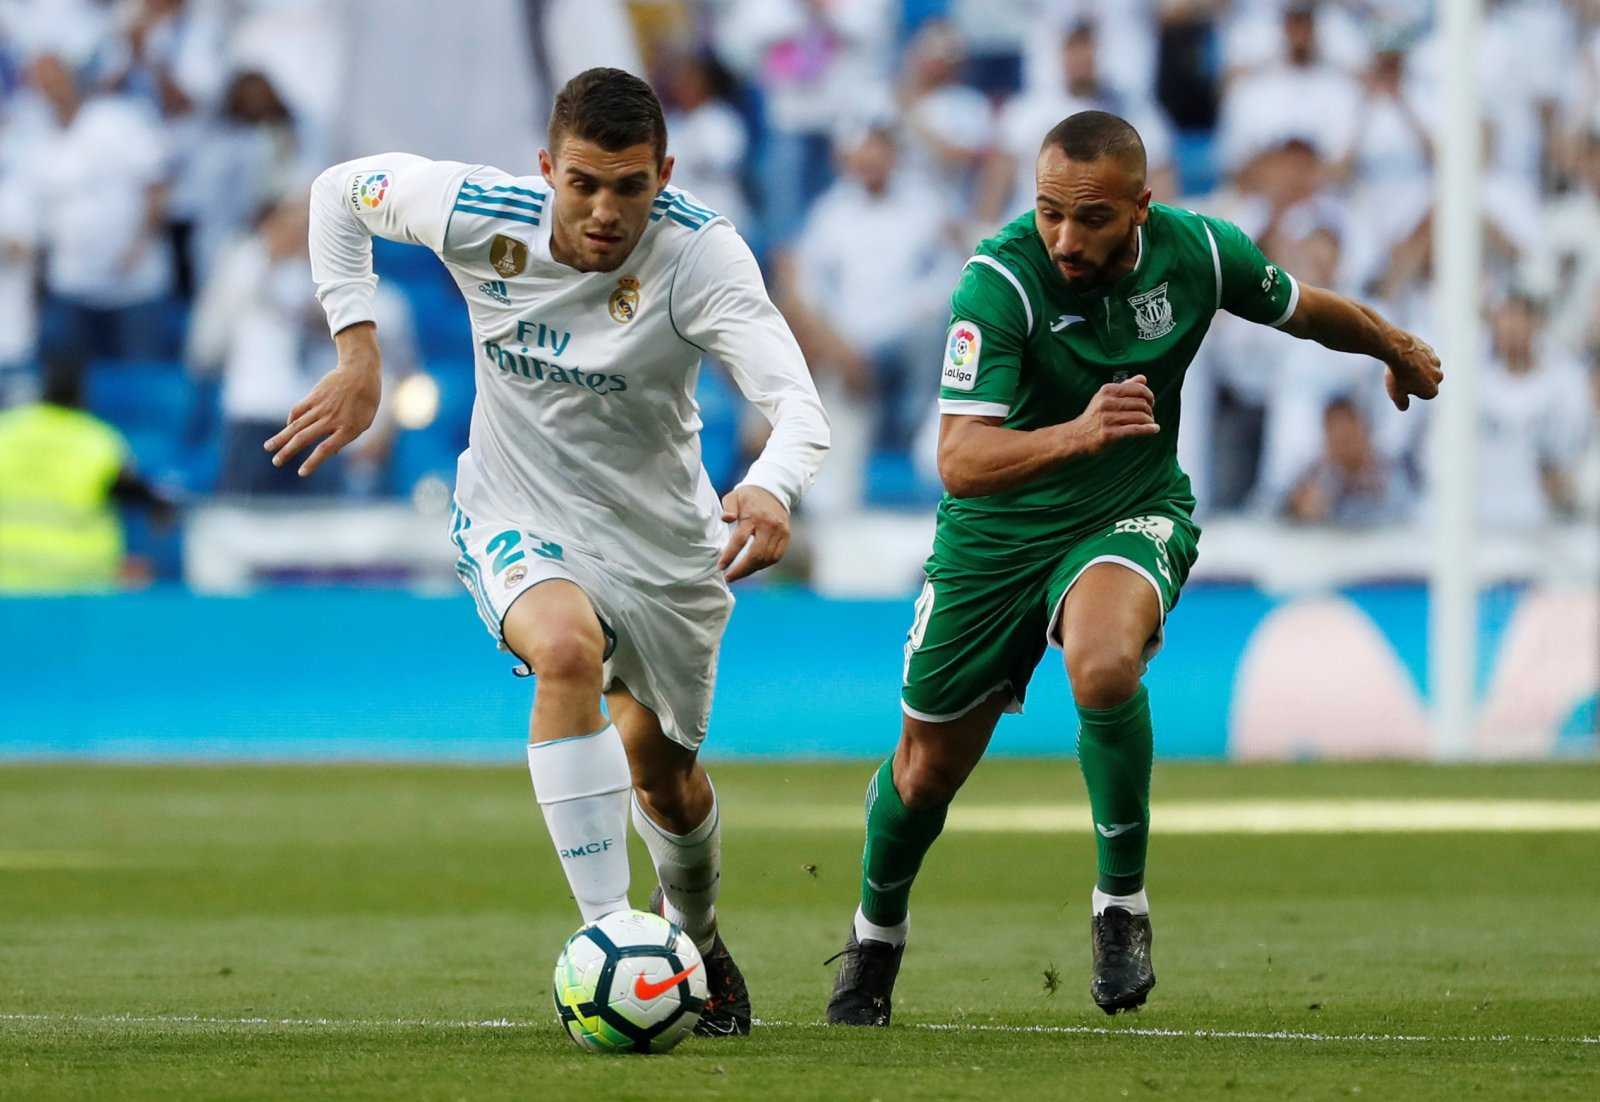 Spurs fans on Twitter desperate to see their club move to sign Kovacic